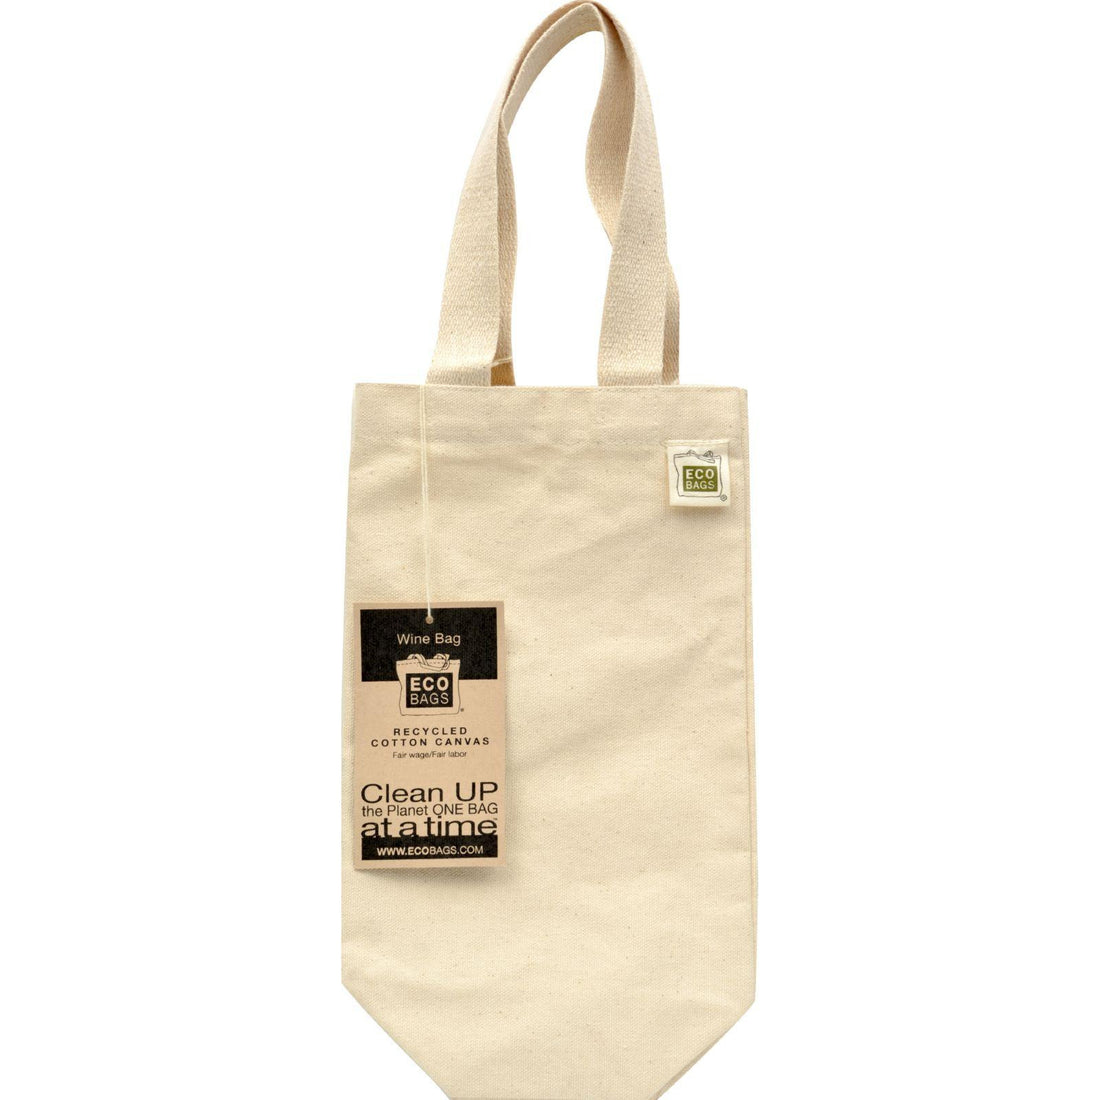 Mother Mantis: Ecobags Canvas Wine Bag (1 Bottle) 6.5x12 - Recycled Cotton - 10 Bags Ecobags